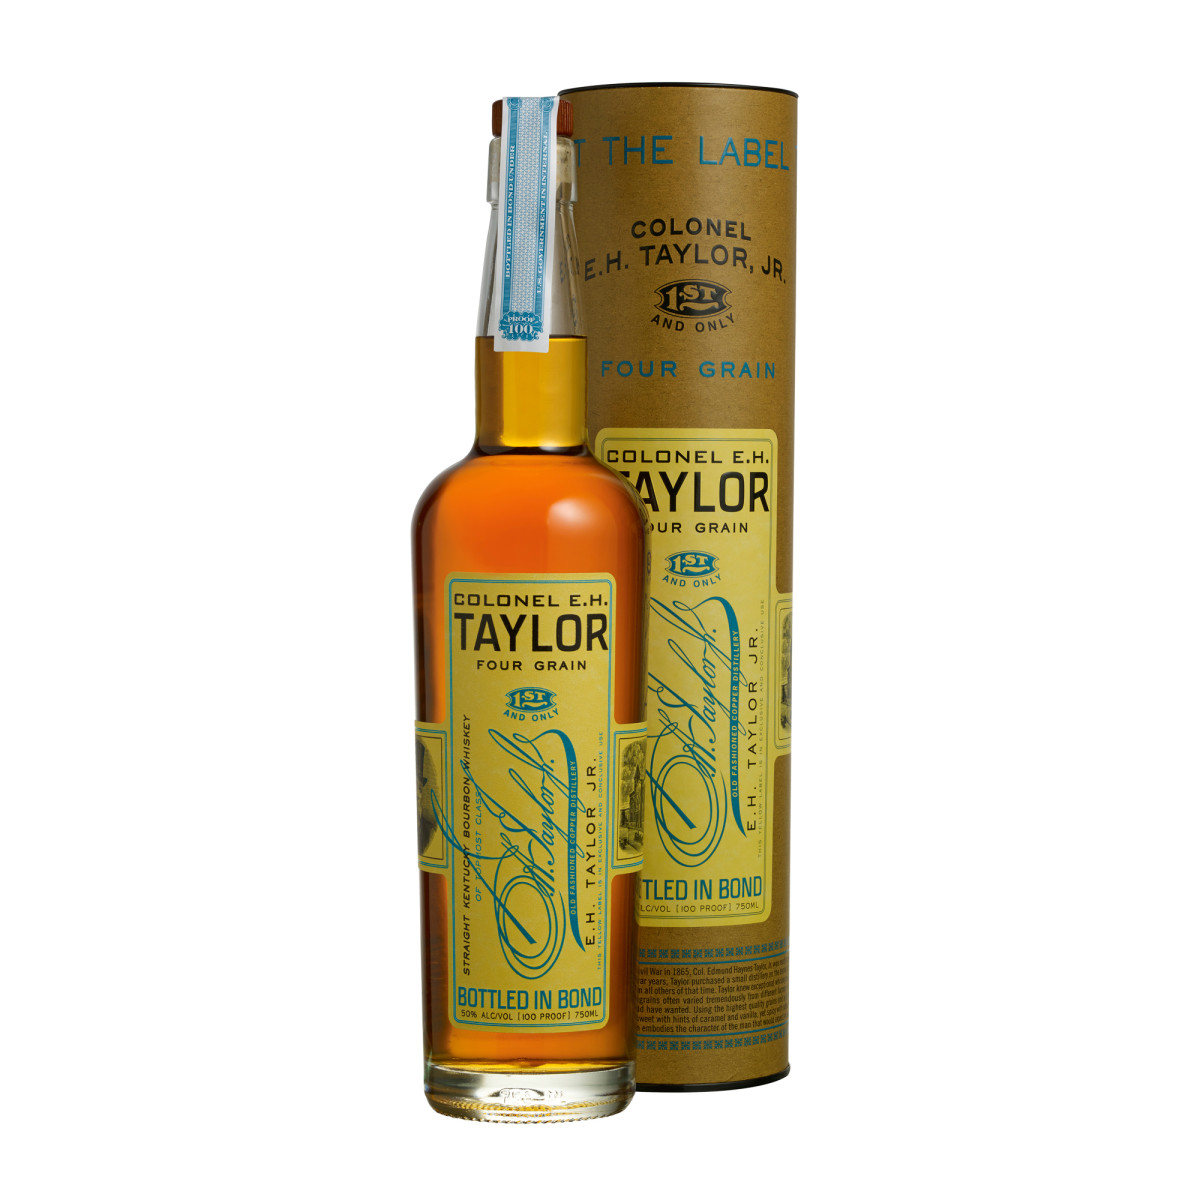 Colonel E.H. Taylor, Jr. Four Grain Bourbon Whiskey